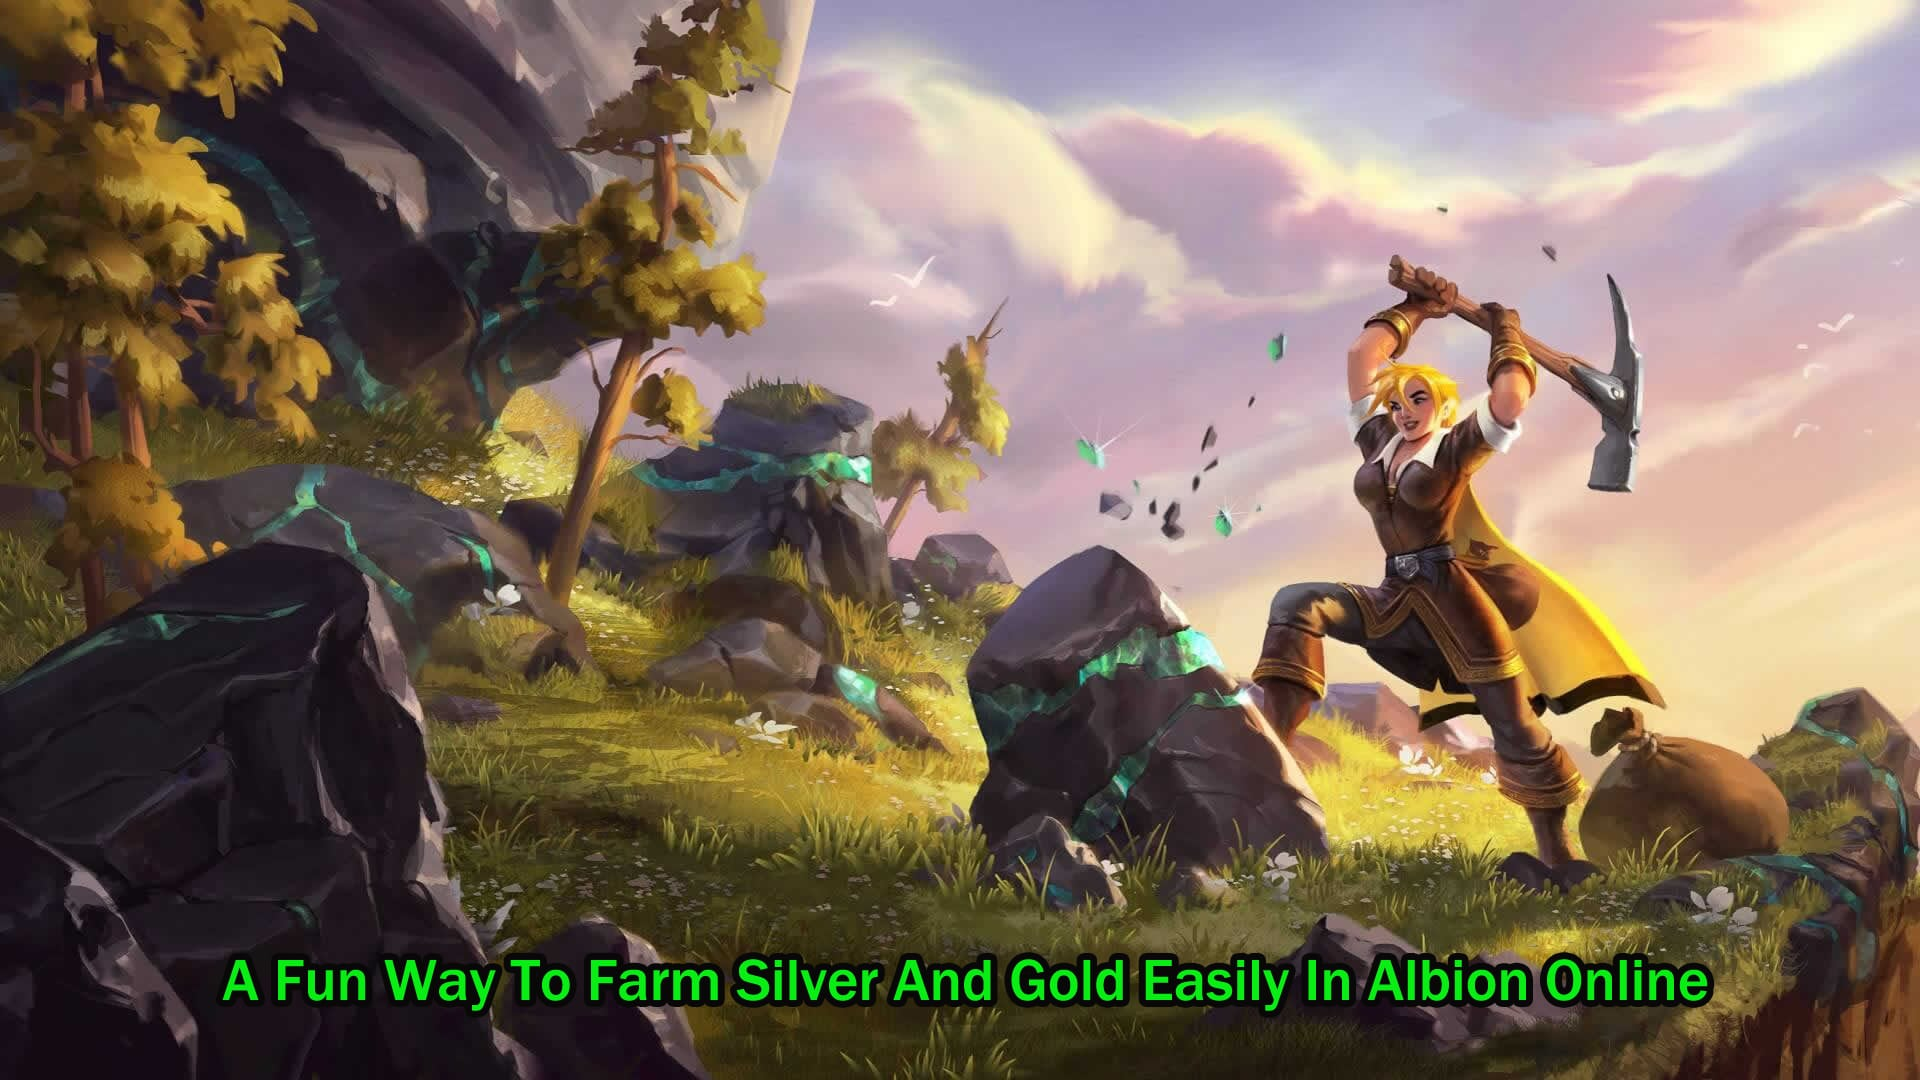 A Fun Way To Farm Silver And Gold Easily In Albion Online